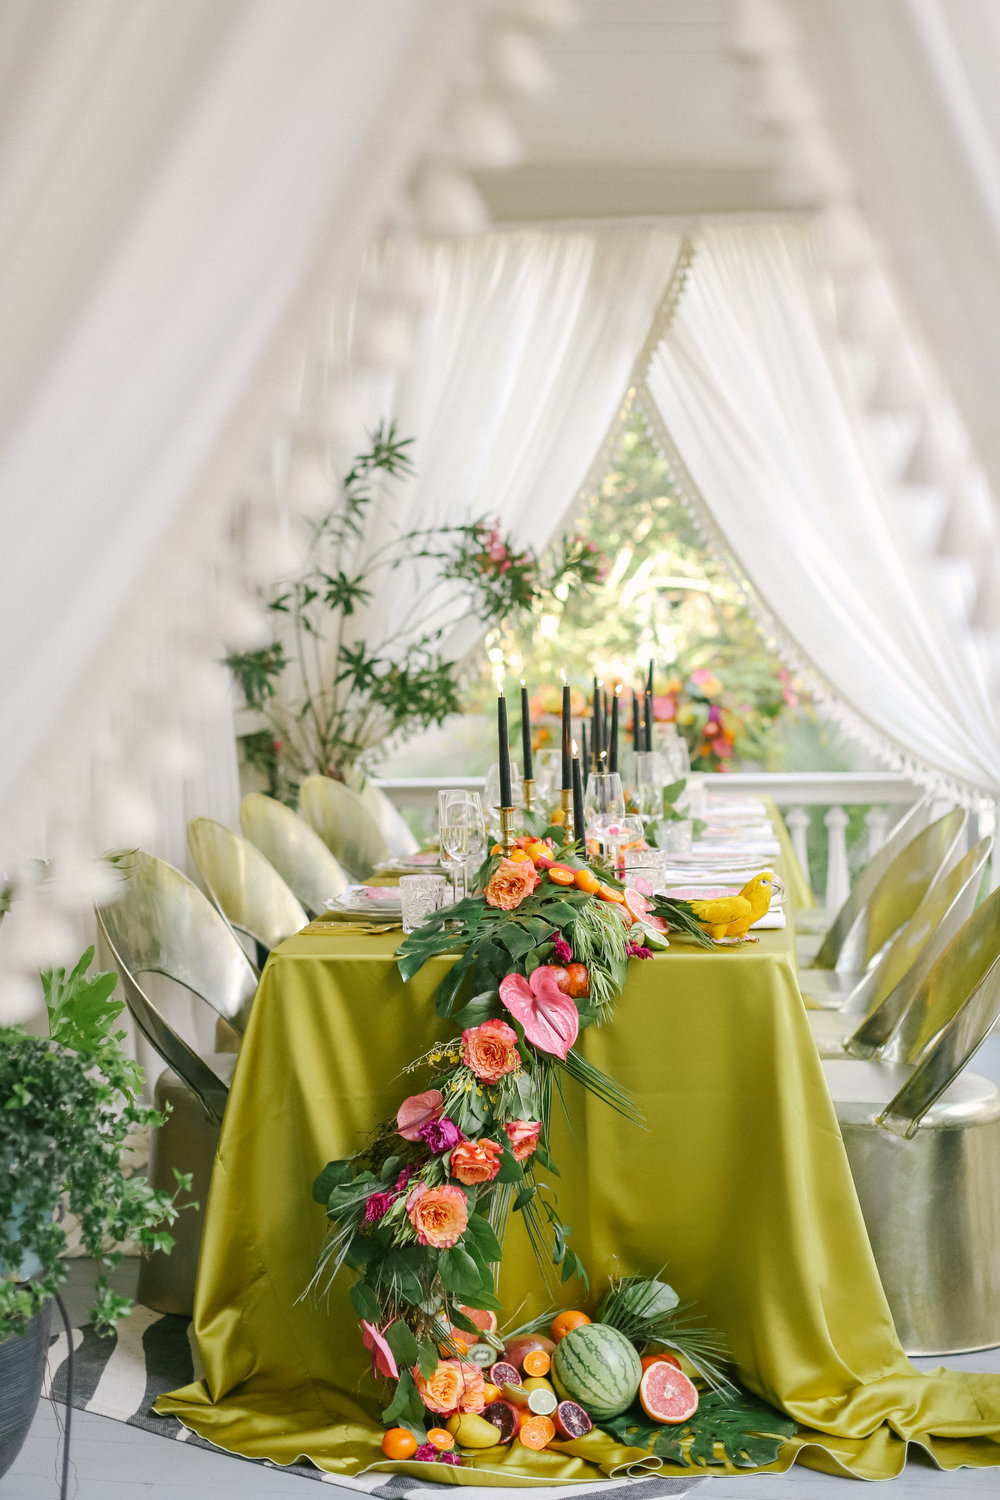 Charleston Porch Party, Events by Reagan, Dinner party, Tropical party, Charleston Event Planner , Table Setting , Fruit and Flower Decor